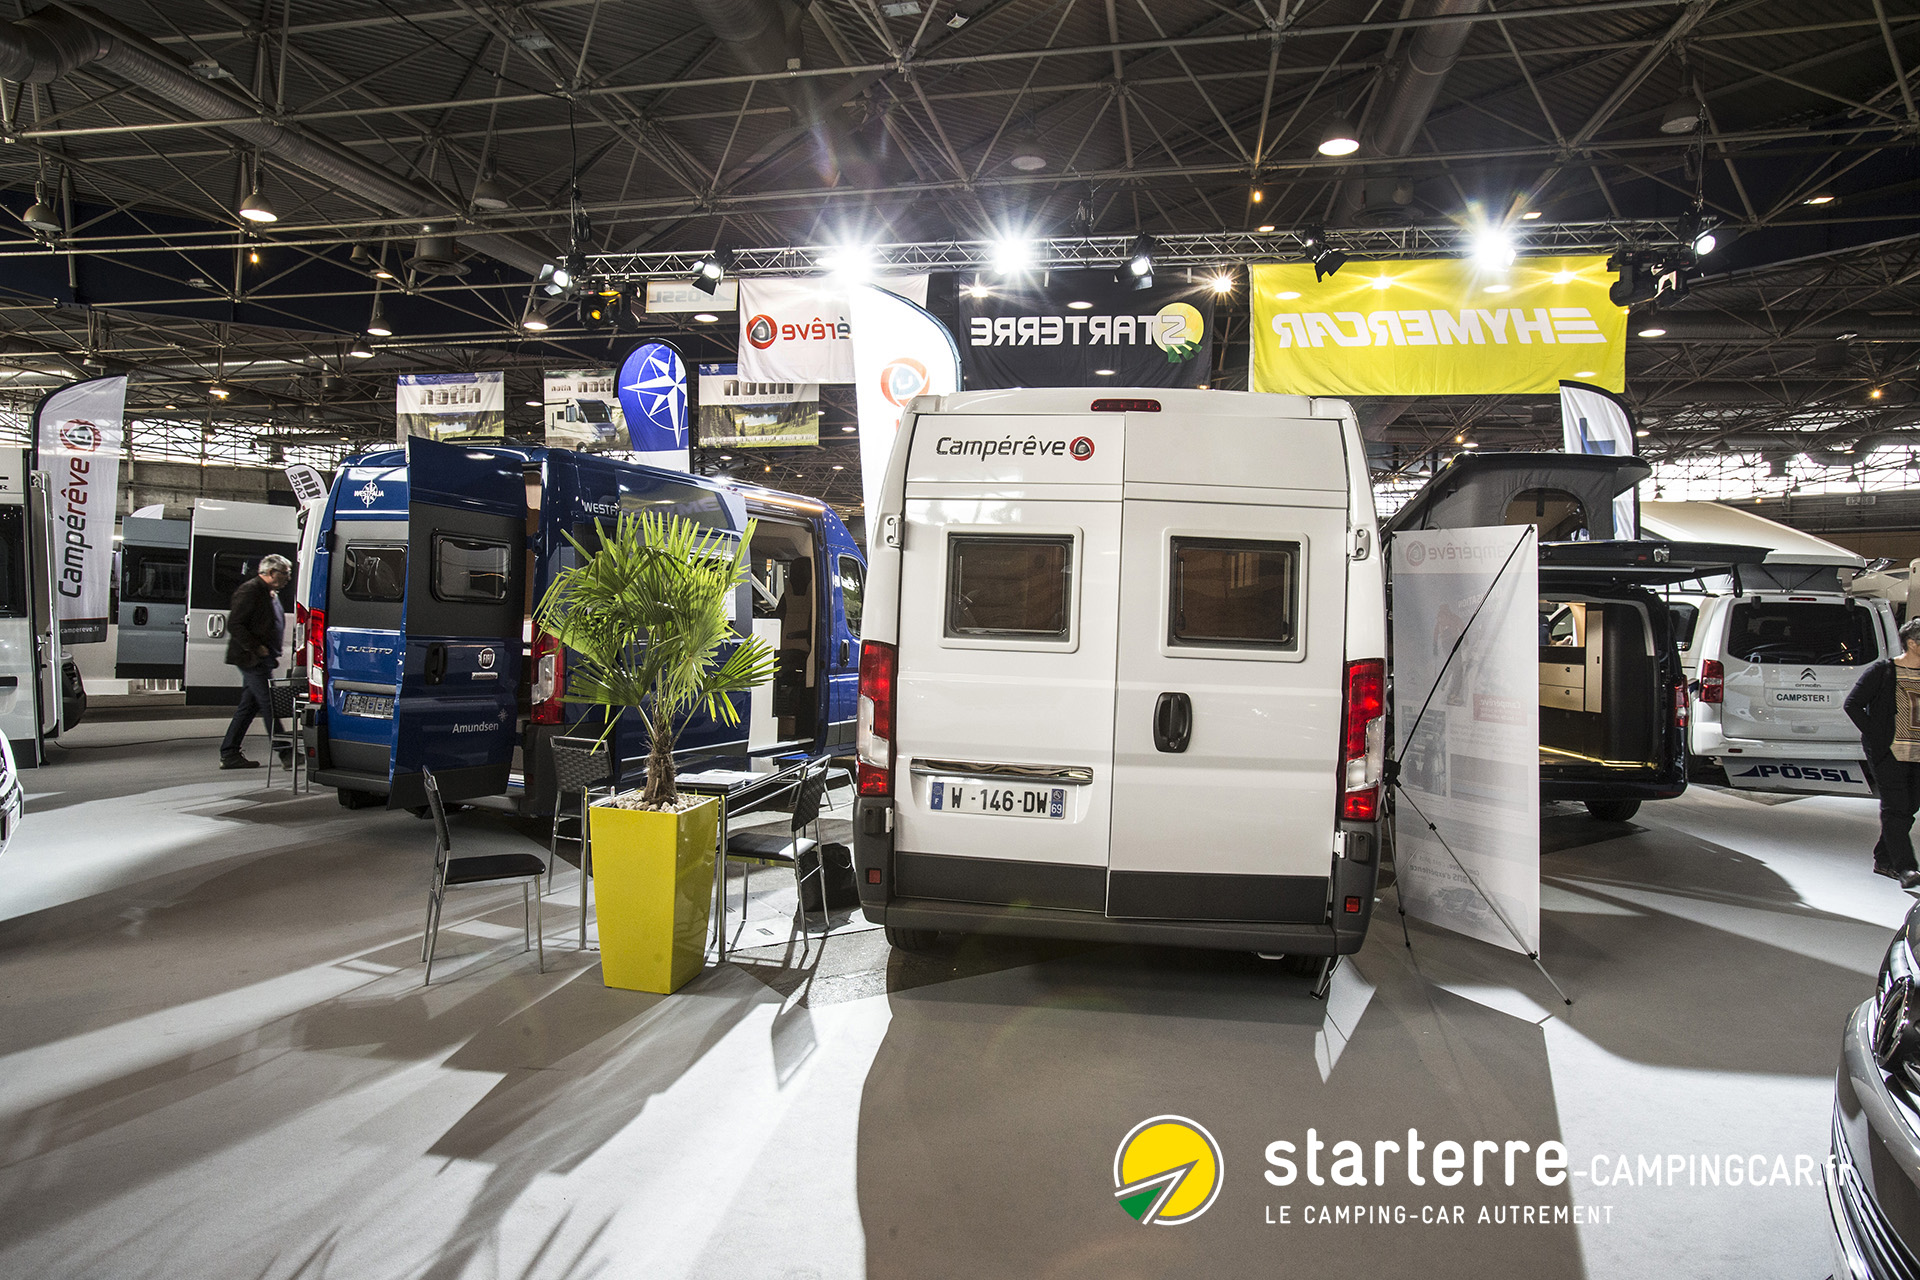 salon du camping car de lyon 2017 nouveaut s 2018 actu starterre. Black Bedroom Furniture Sets. Home Design Ideas